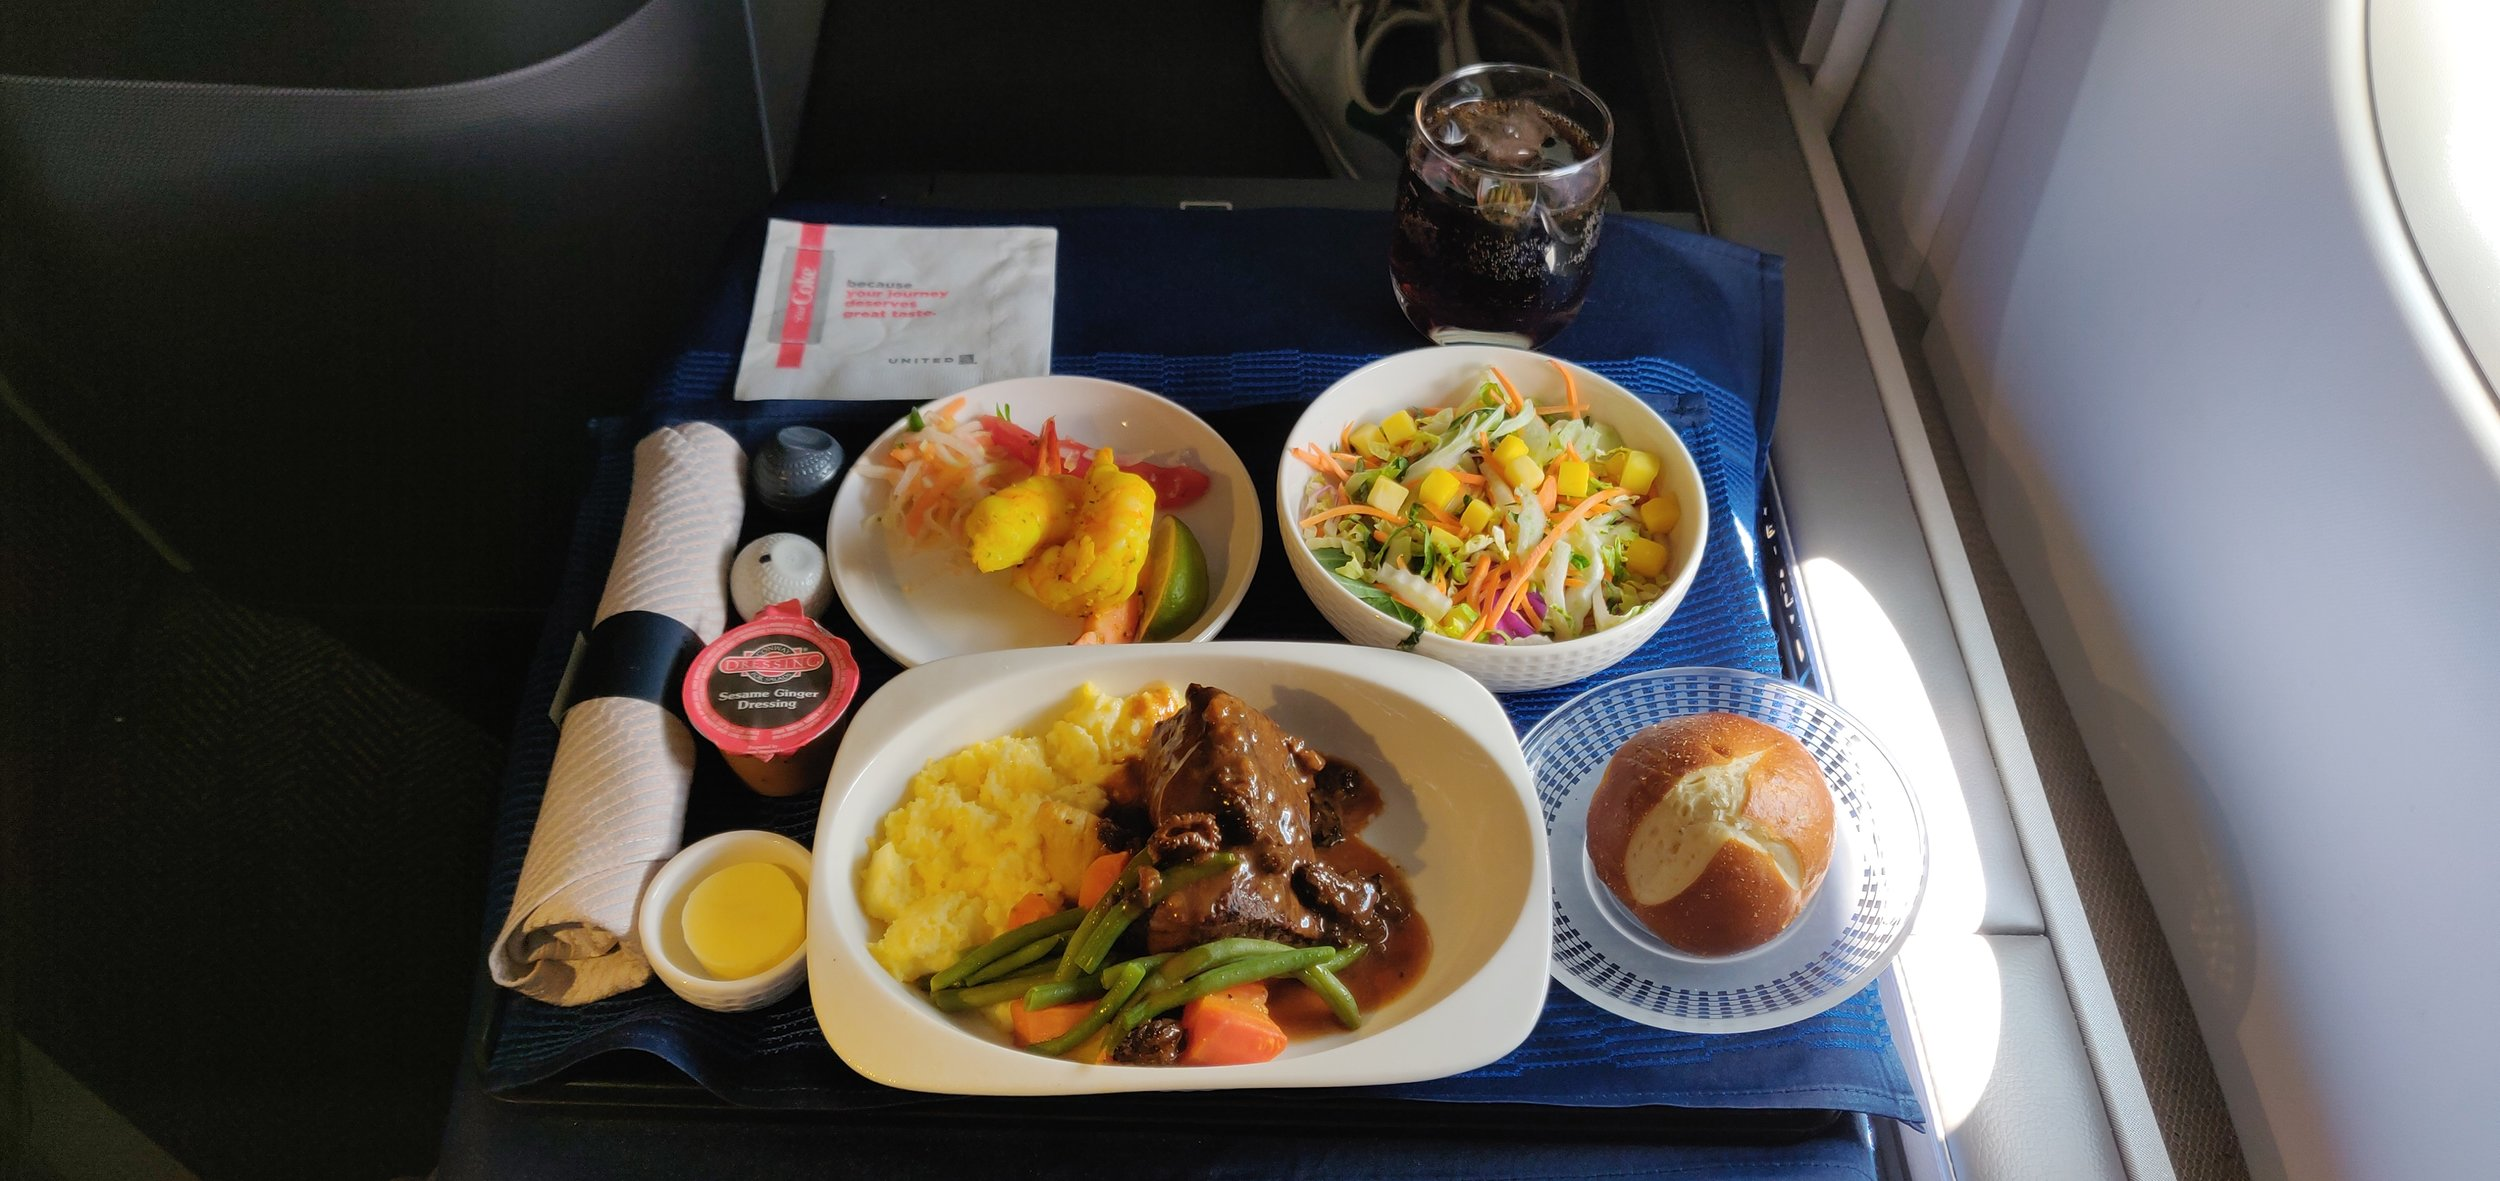 United Polaris Meal Service - Seared Beef Short Ribs